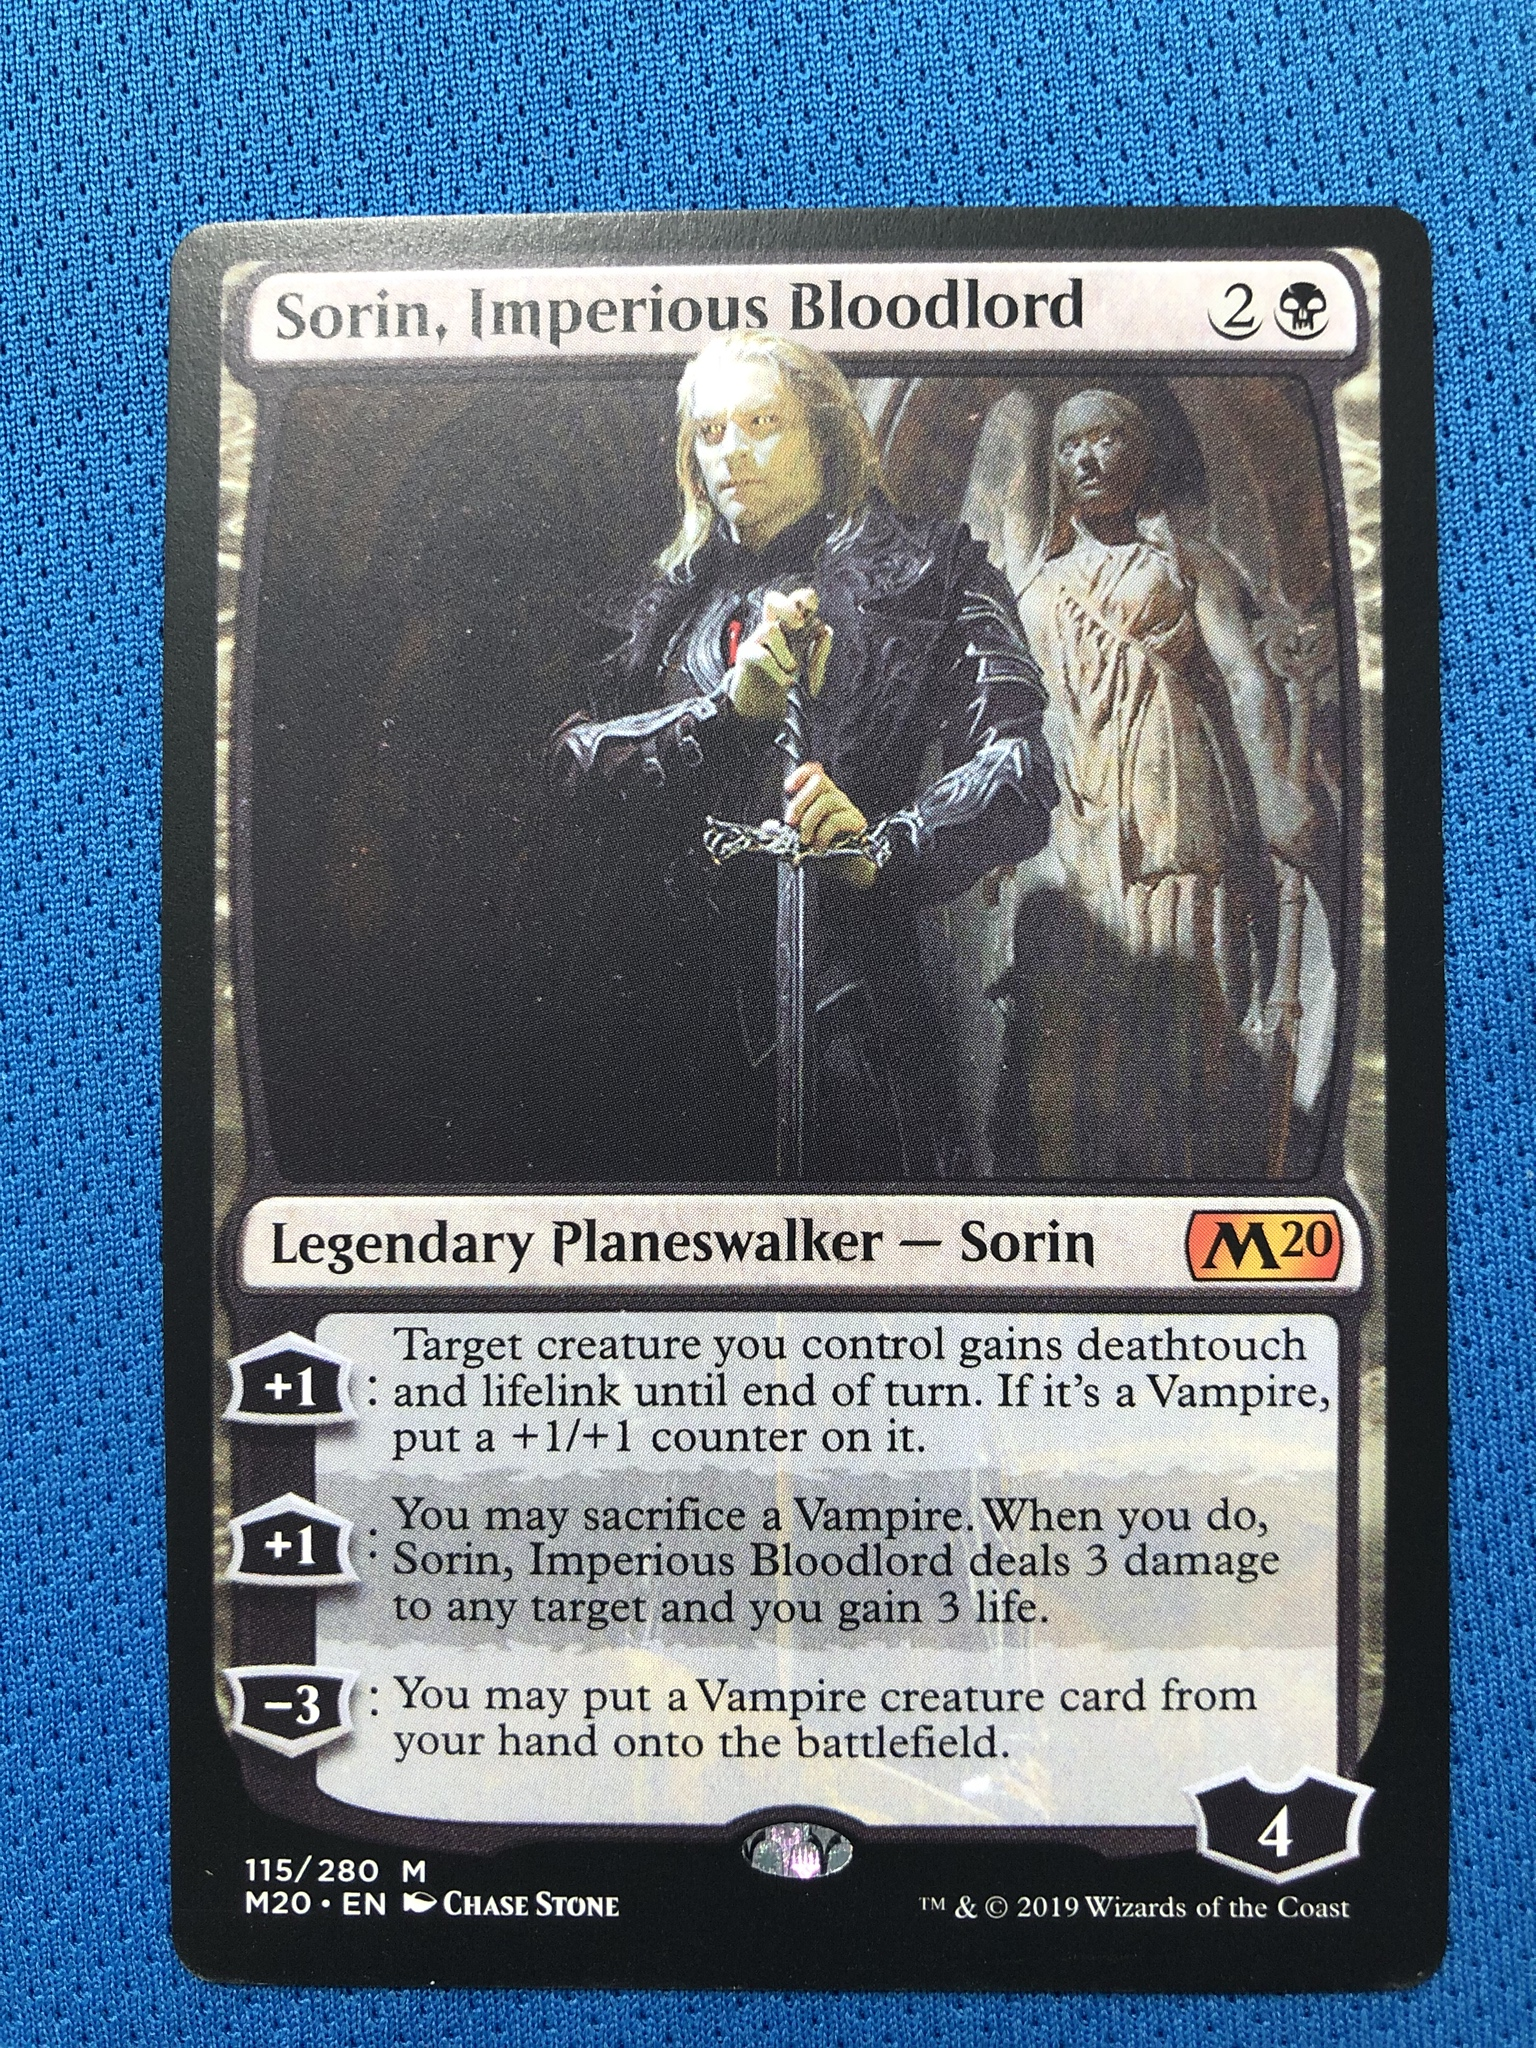 Sorin, Imperious BloodlordM20 Hologram Magician ProxyKing 8.0 VIP The Proxy Cards To Gathering Every Single Mg Card.